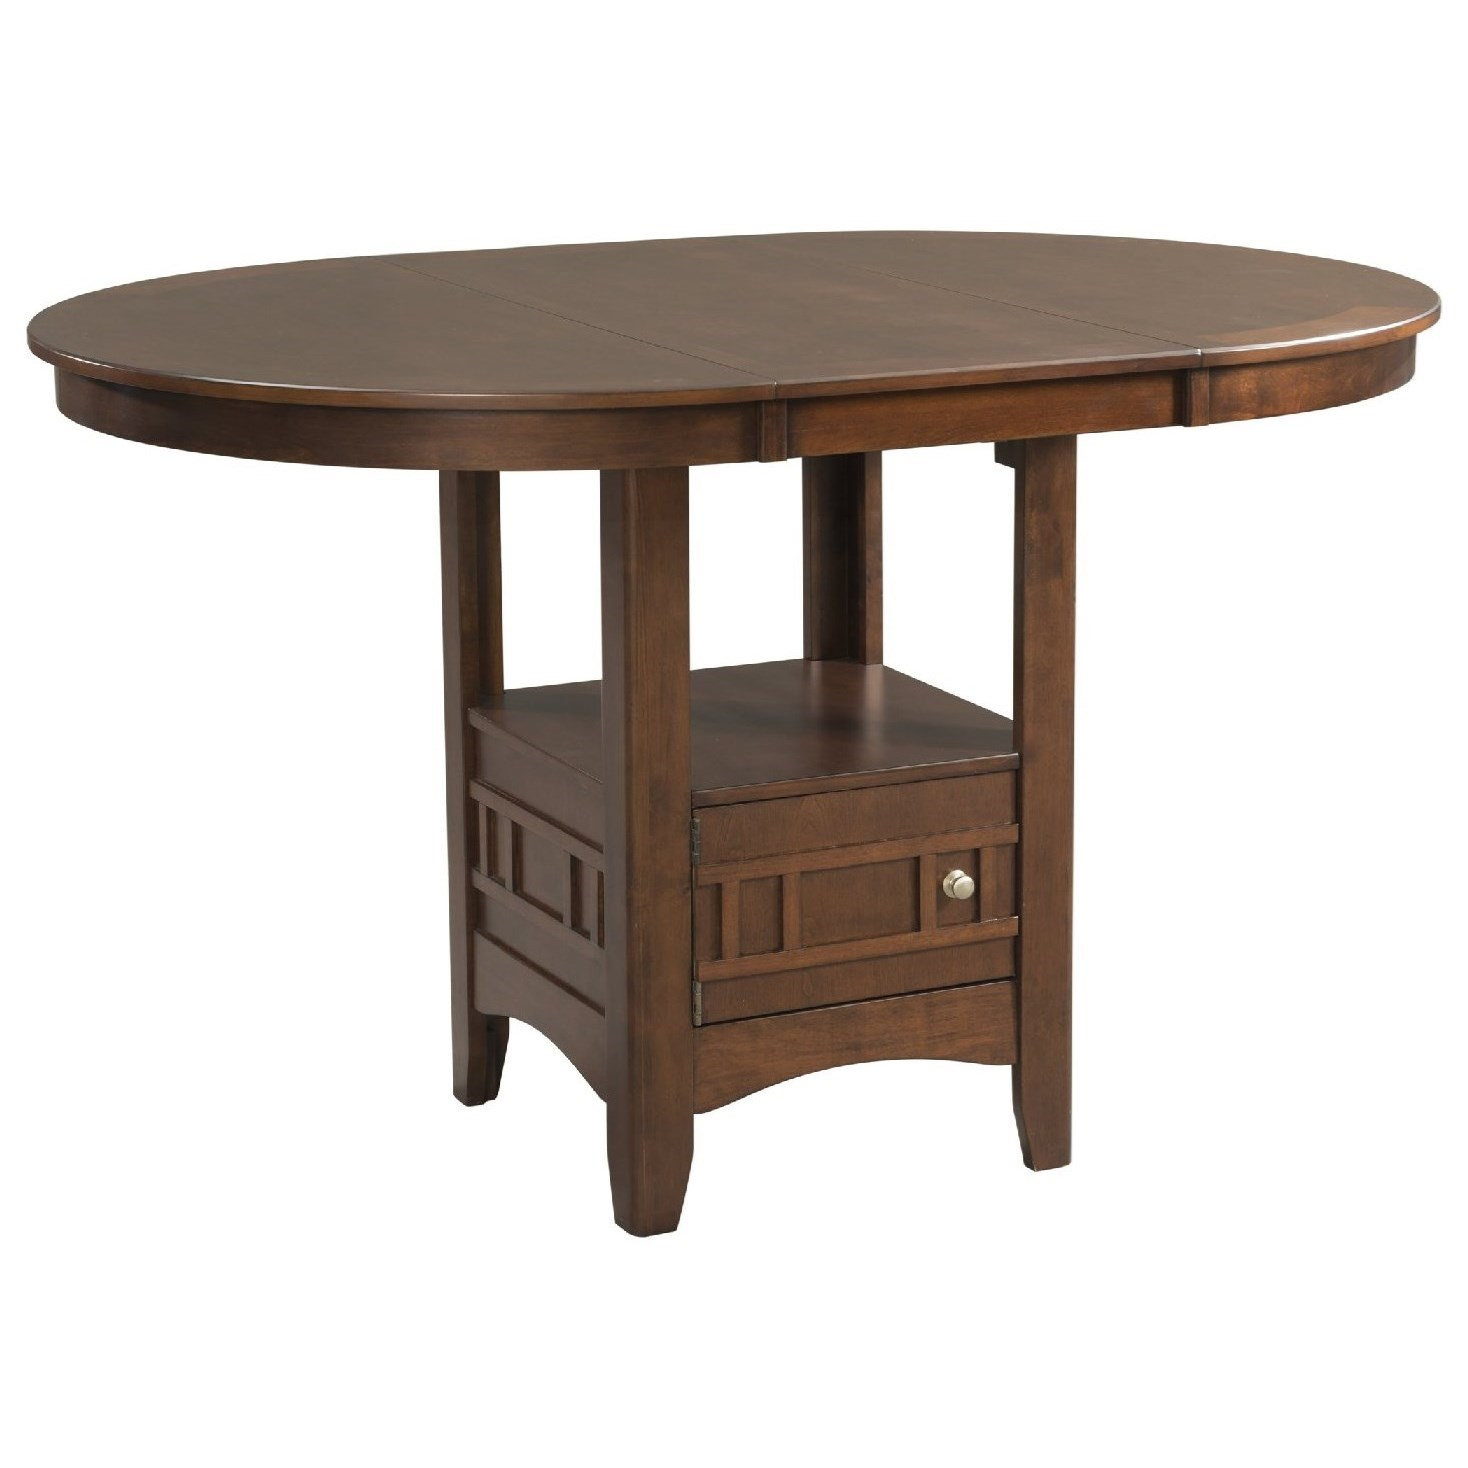 Elements international max casual counter height table set for 100 table height